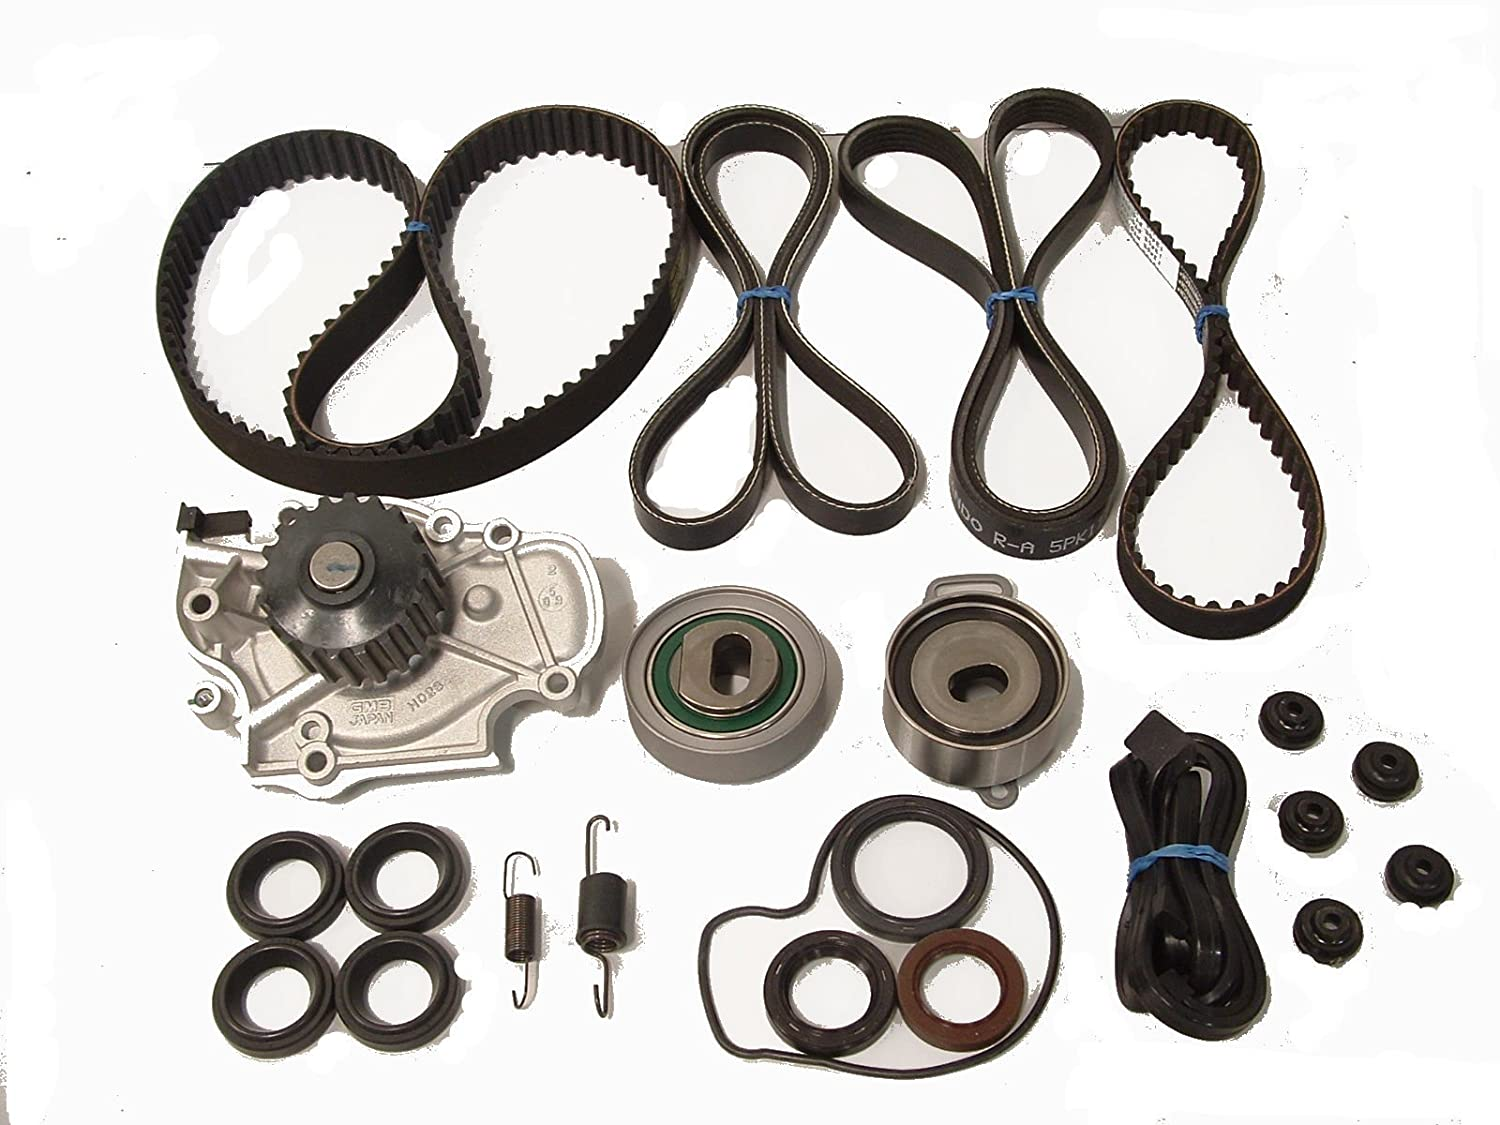 Amazon.com: TBK Timing Belt Kit Honda Accord 1998 to 2002 Dx Lx Ex VP 4cyl  Aisin Water Pump Koyo Bearings, Bando Drive Belts Springs and Seals:  Automotive